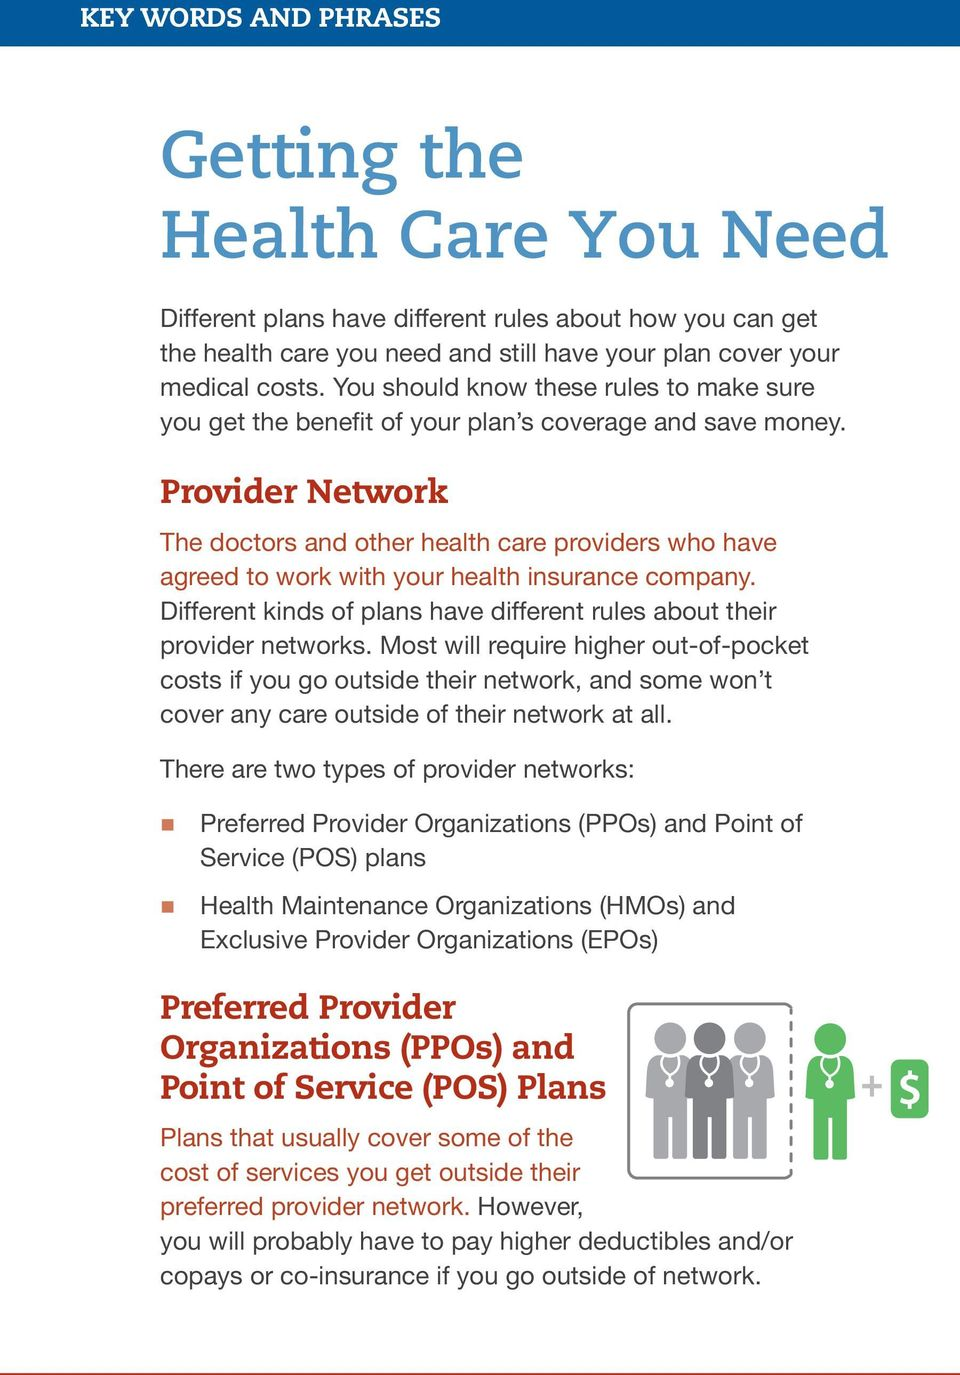 Provider Network The doctors and other health care providers who have agreed to work with your health insurance company. Different kinds of plans have different rules about their provider networks.